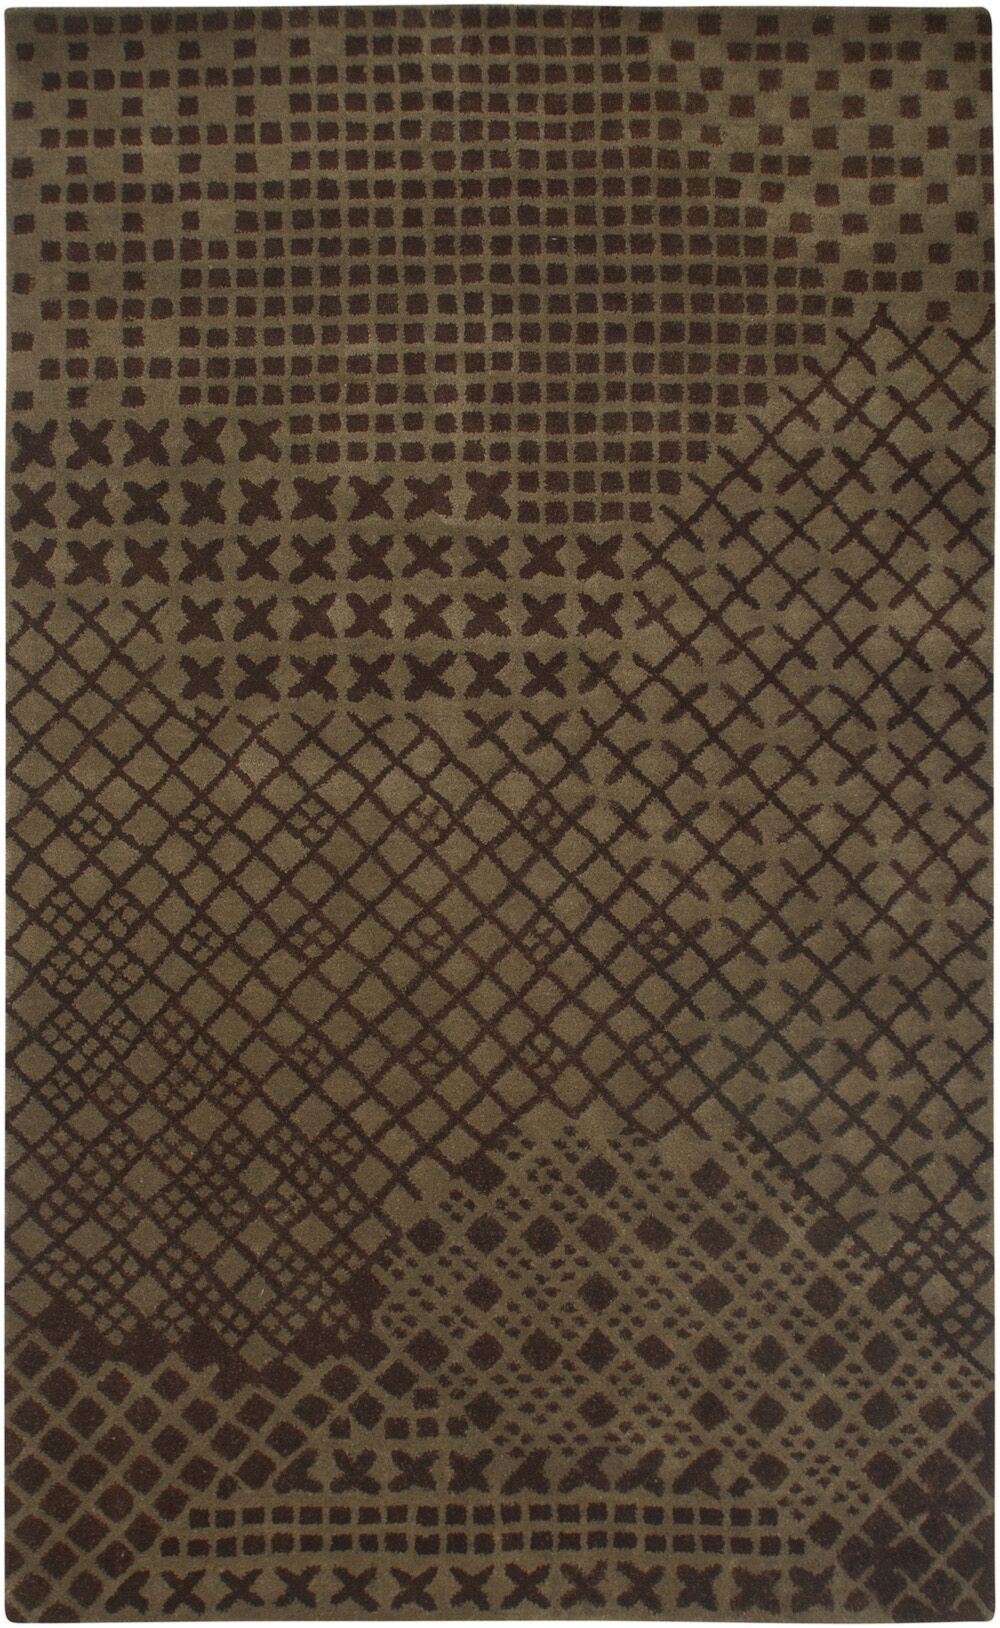 Umreth Hand-Tufted Brown Area Rug Rug Size: Rectangle 9' x 12'